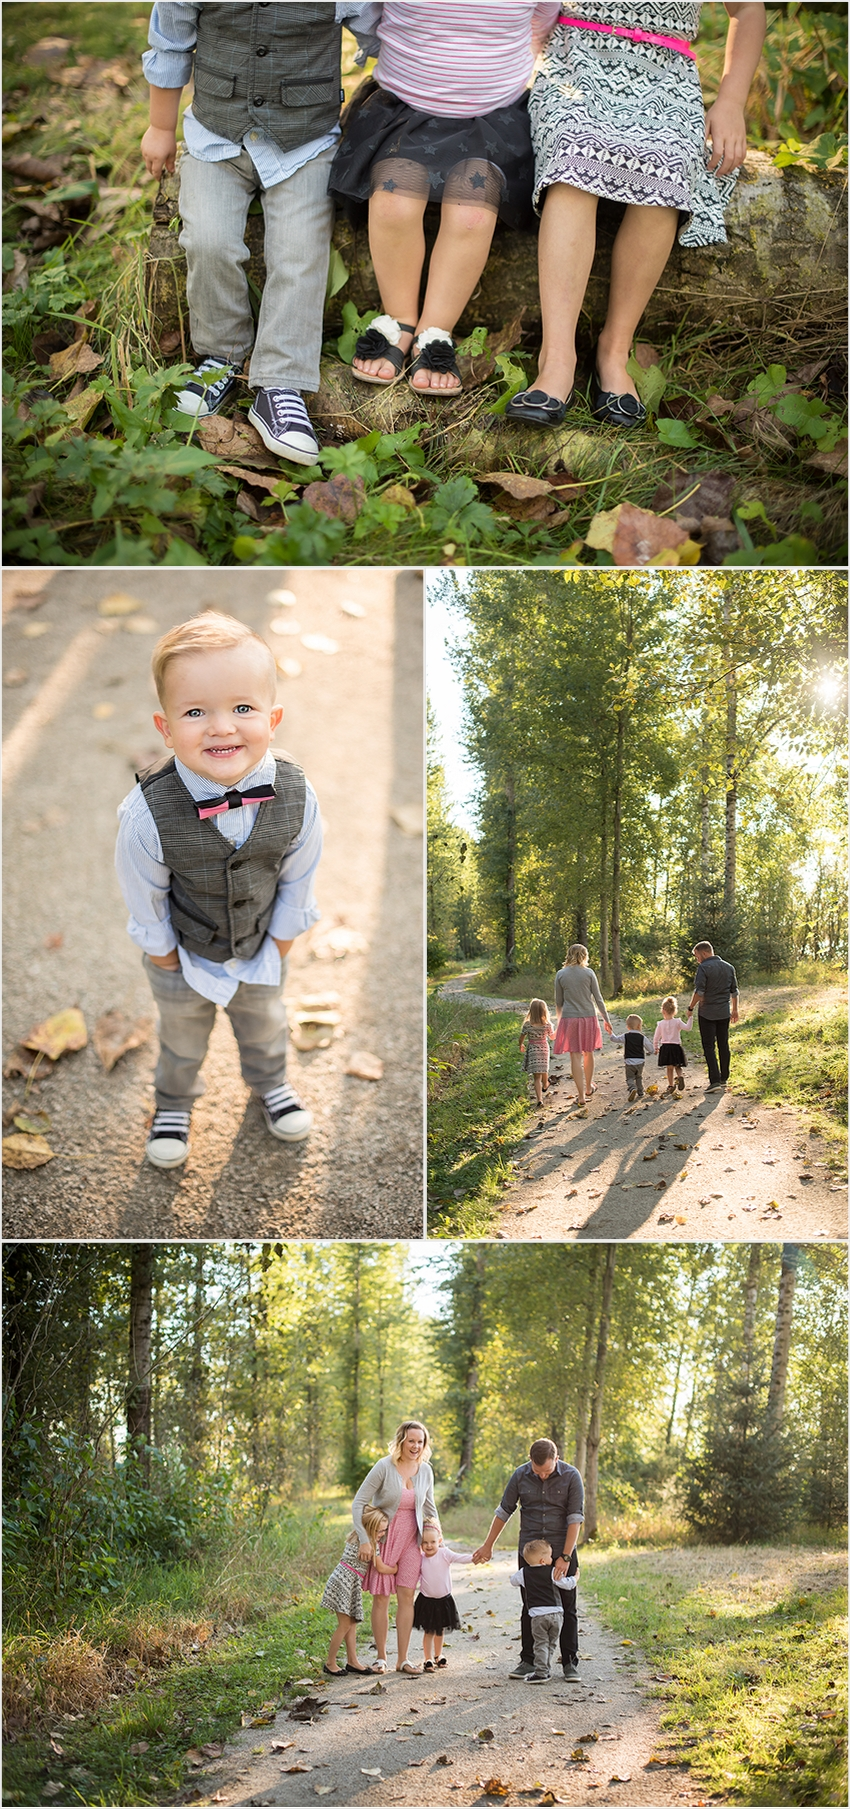 abbotsford-bc-family-photographer-photographer-005-side-5